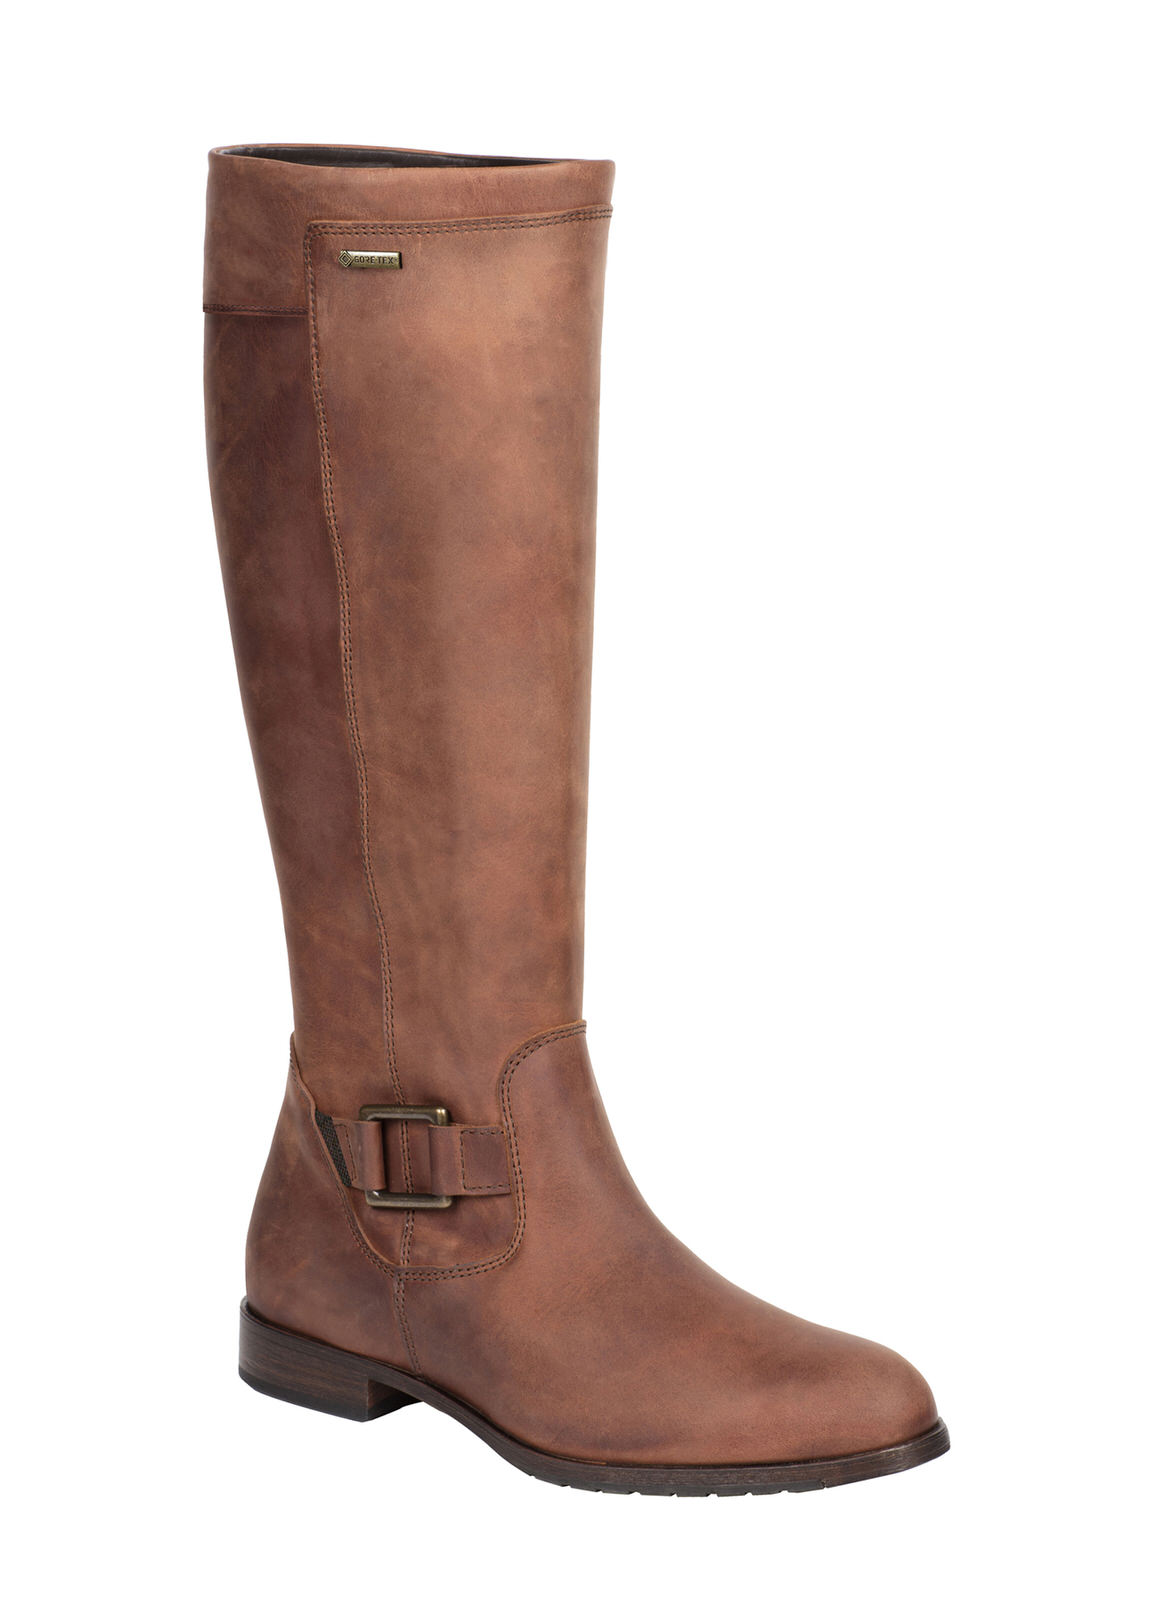 Dubarry_Limerick Leather Soled Boot - Chestnut_Image_1